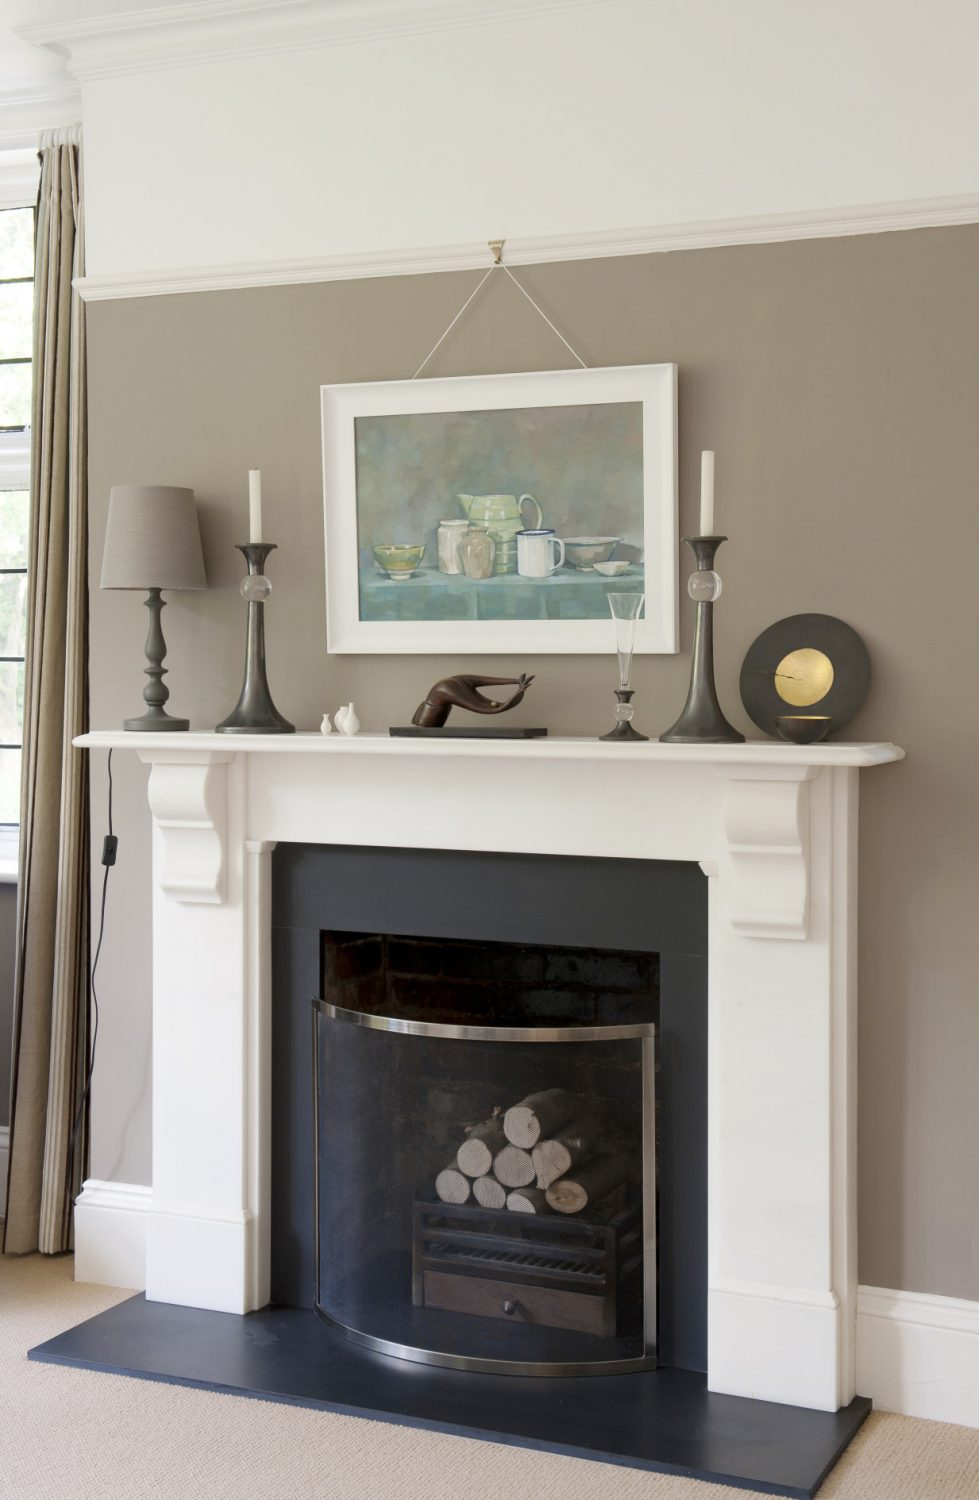 The fireplace is surrounded by neutral, restful tones